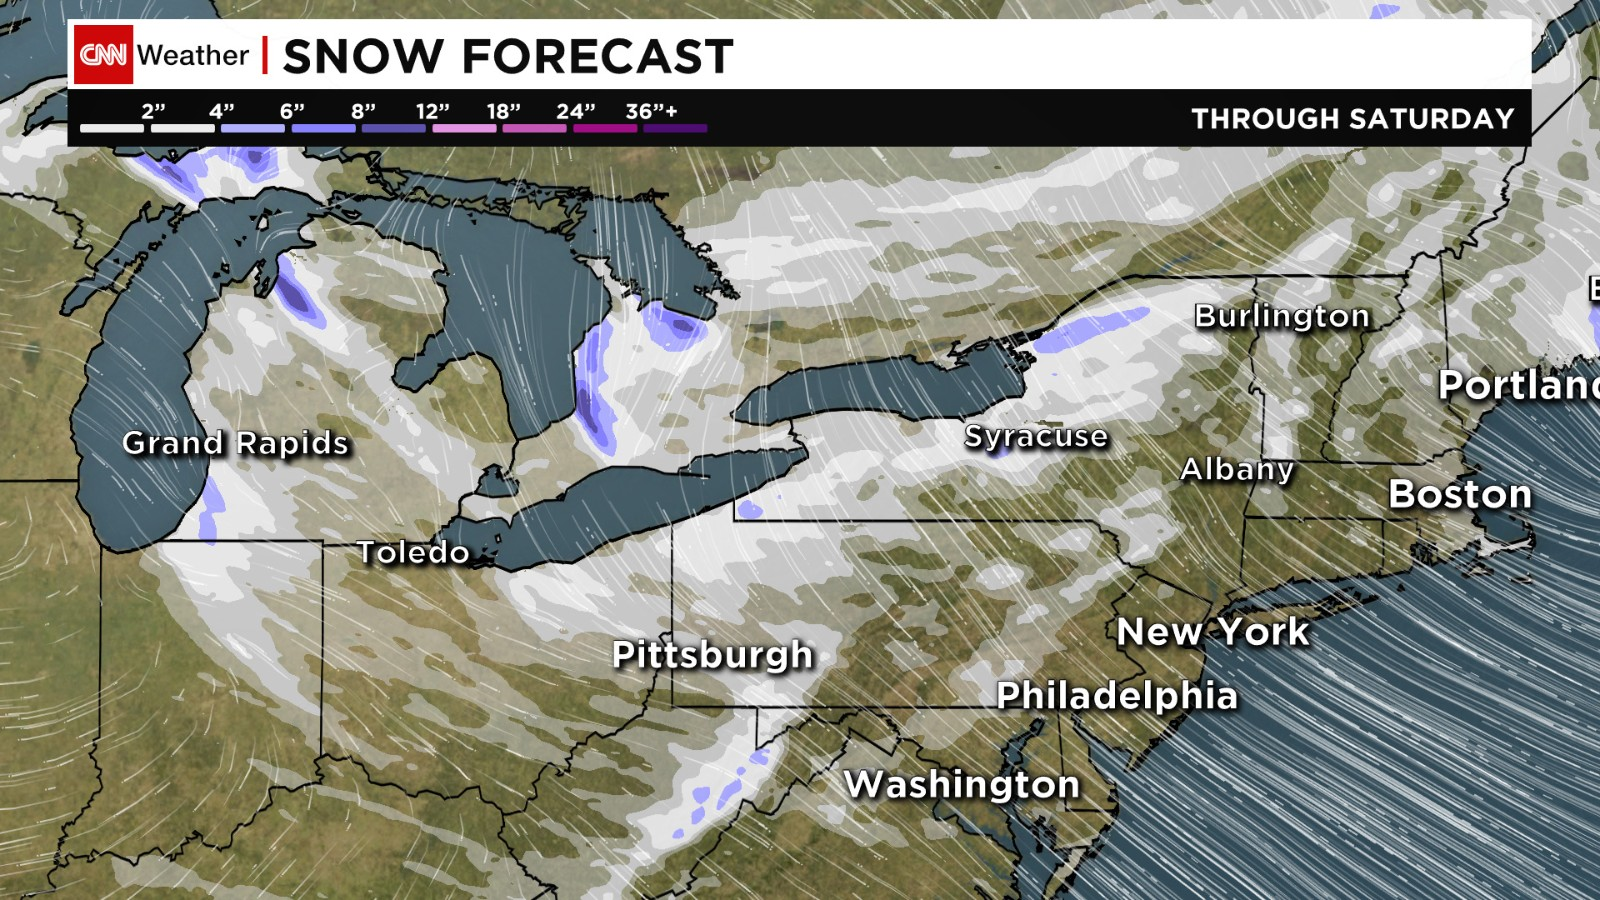 Dangerously Cold Weather In Northeast CNNcom - Us weather map lows